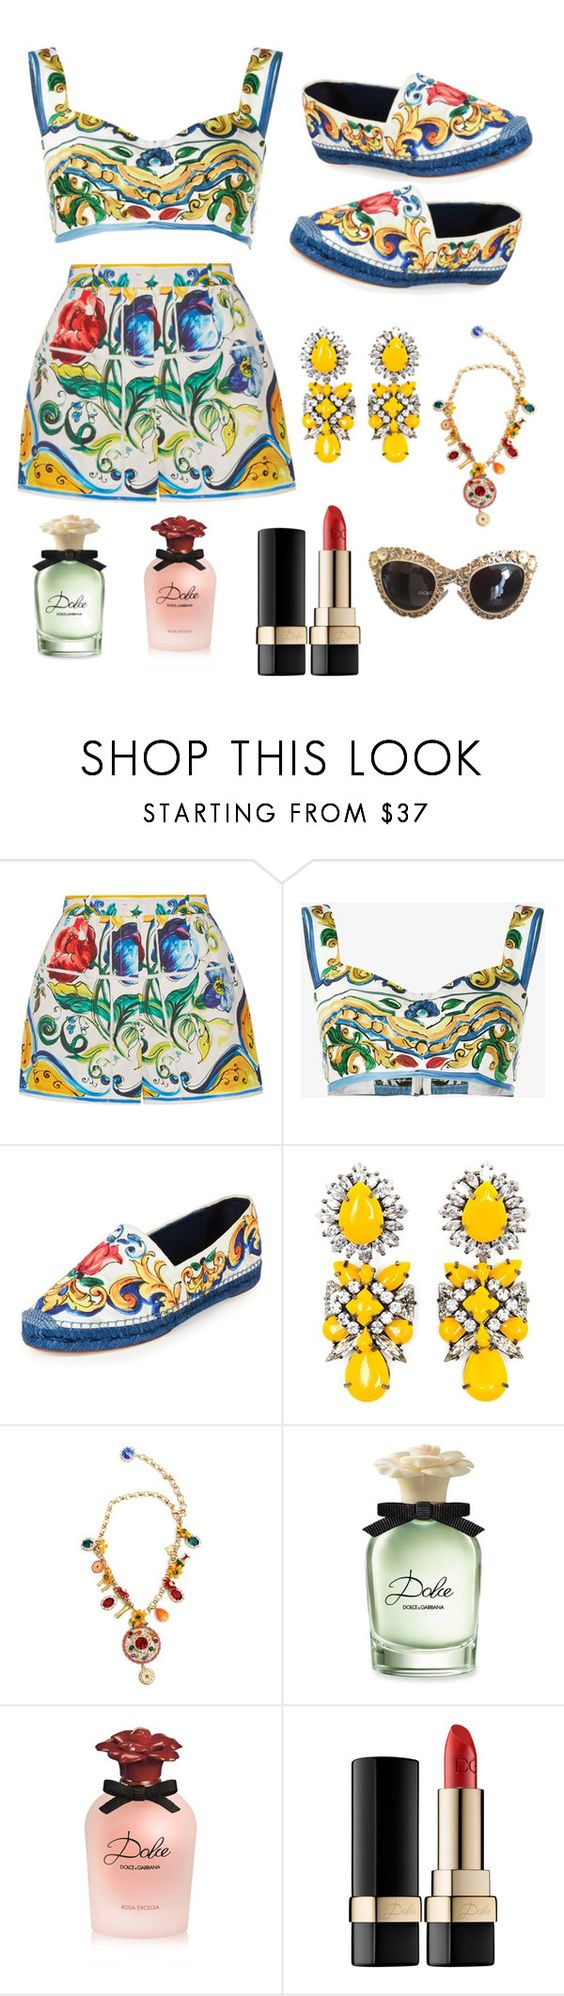 """Dolce and Gabbana"" by thetrendymermaid ❤ liked on Polyvore featuring Dolce&Gabbana and Shourouk"